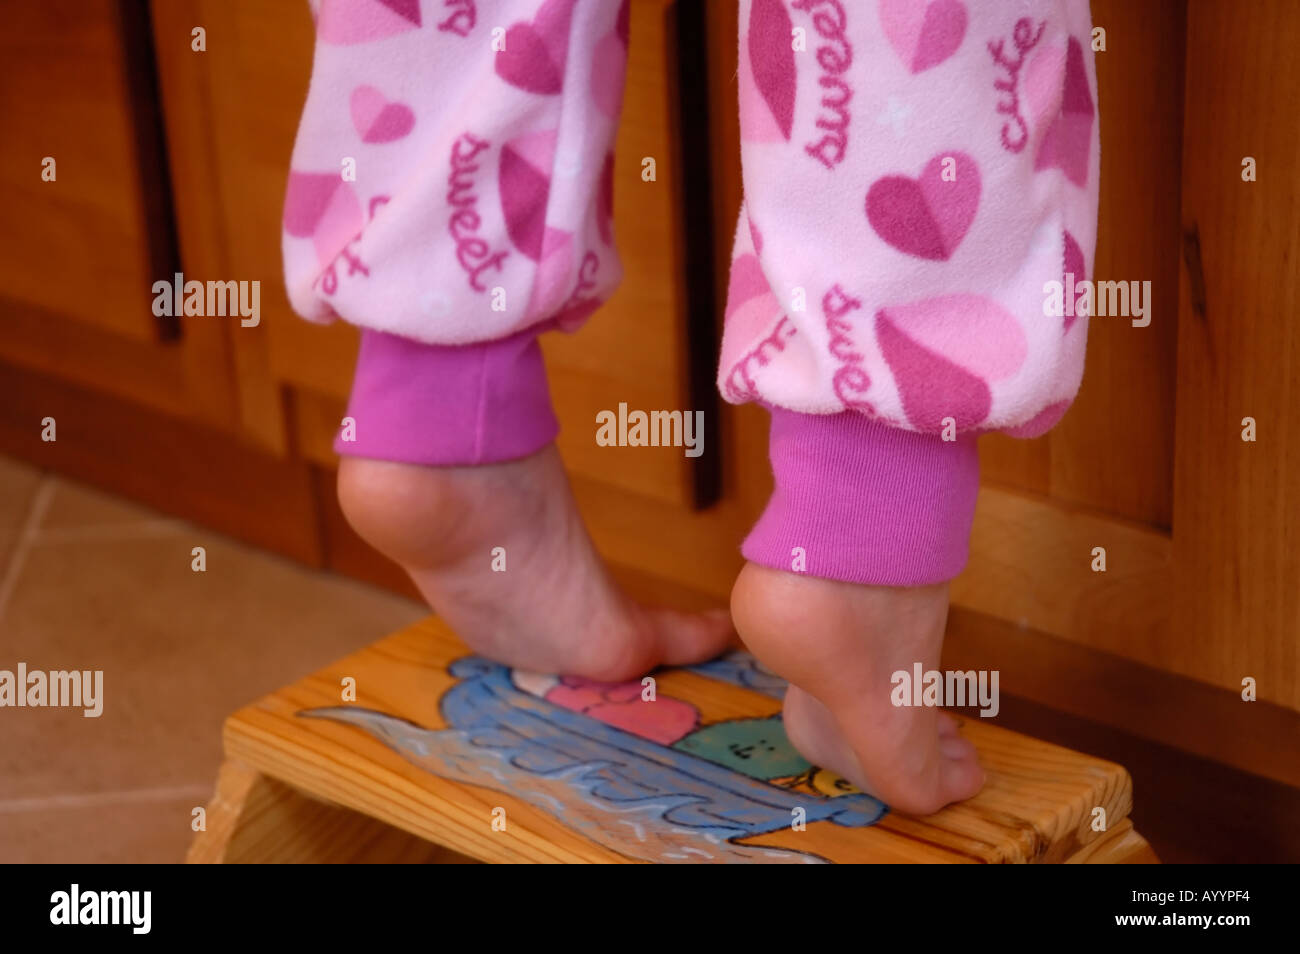 Young girl's feet on tiptoes on a bathroom stool. - Stock Image